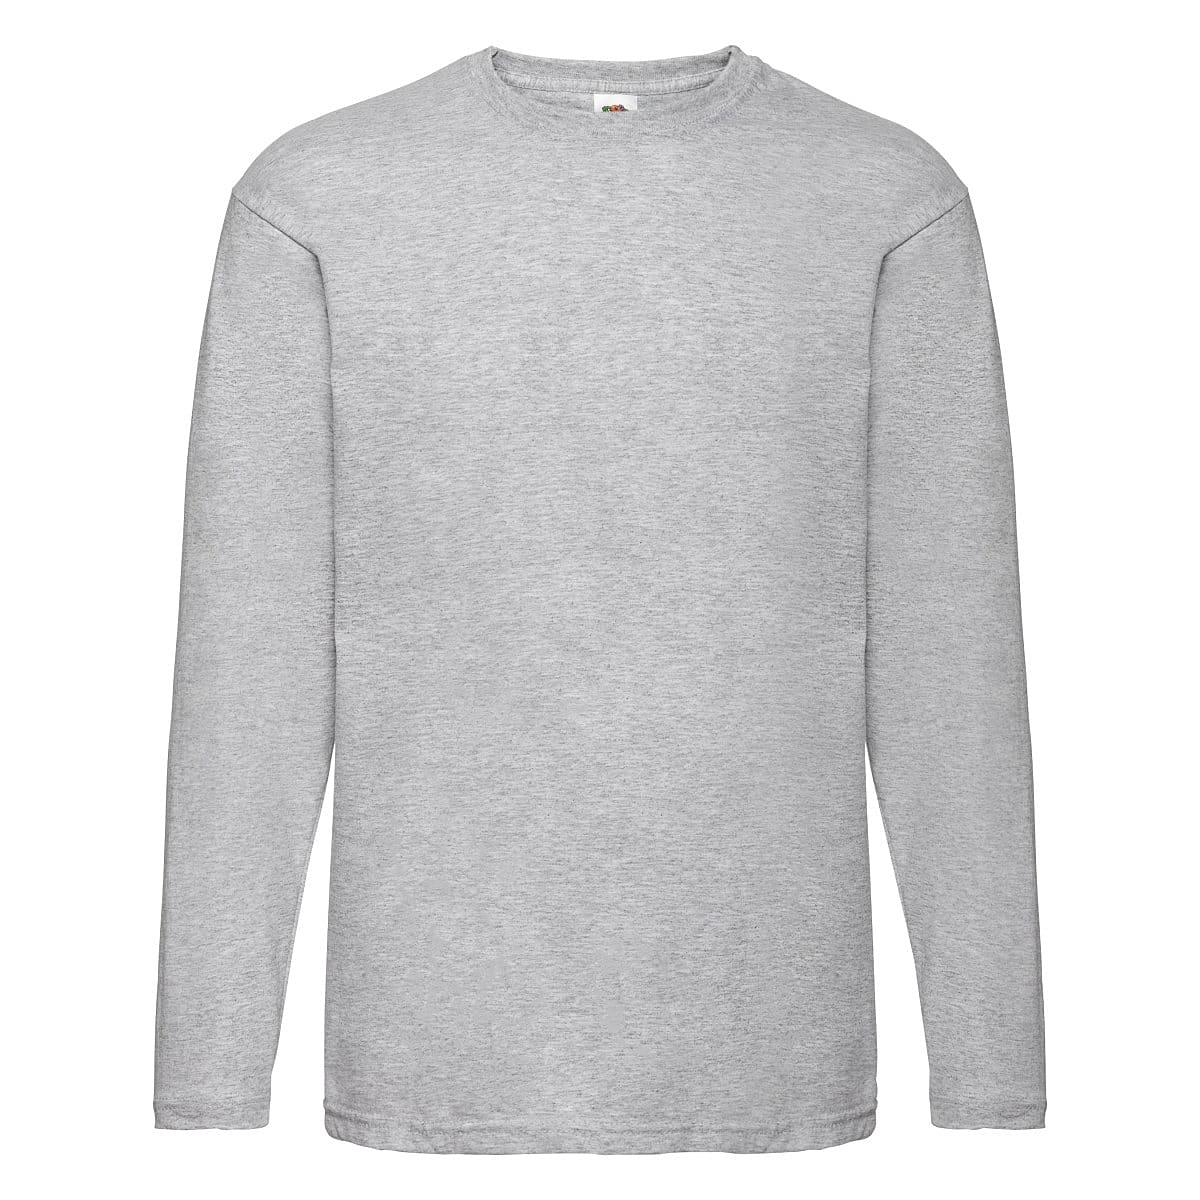 Fruit Of The Loom Valueweight Long-Sleeve T-Shirt in Heather Grey (Product Code: 61038)